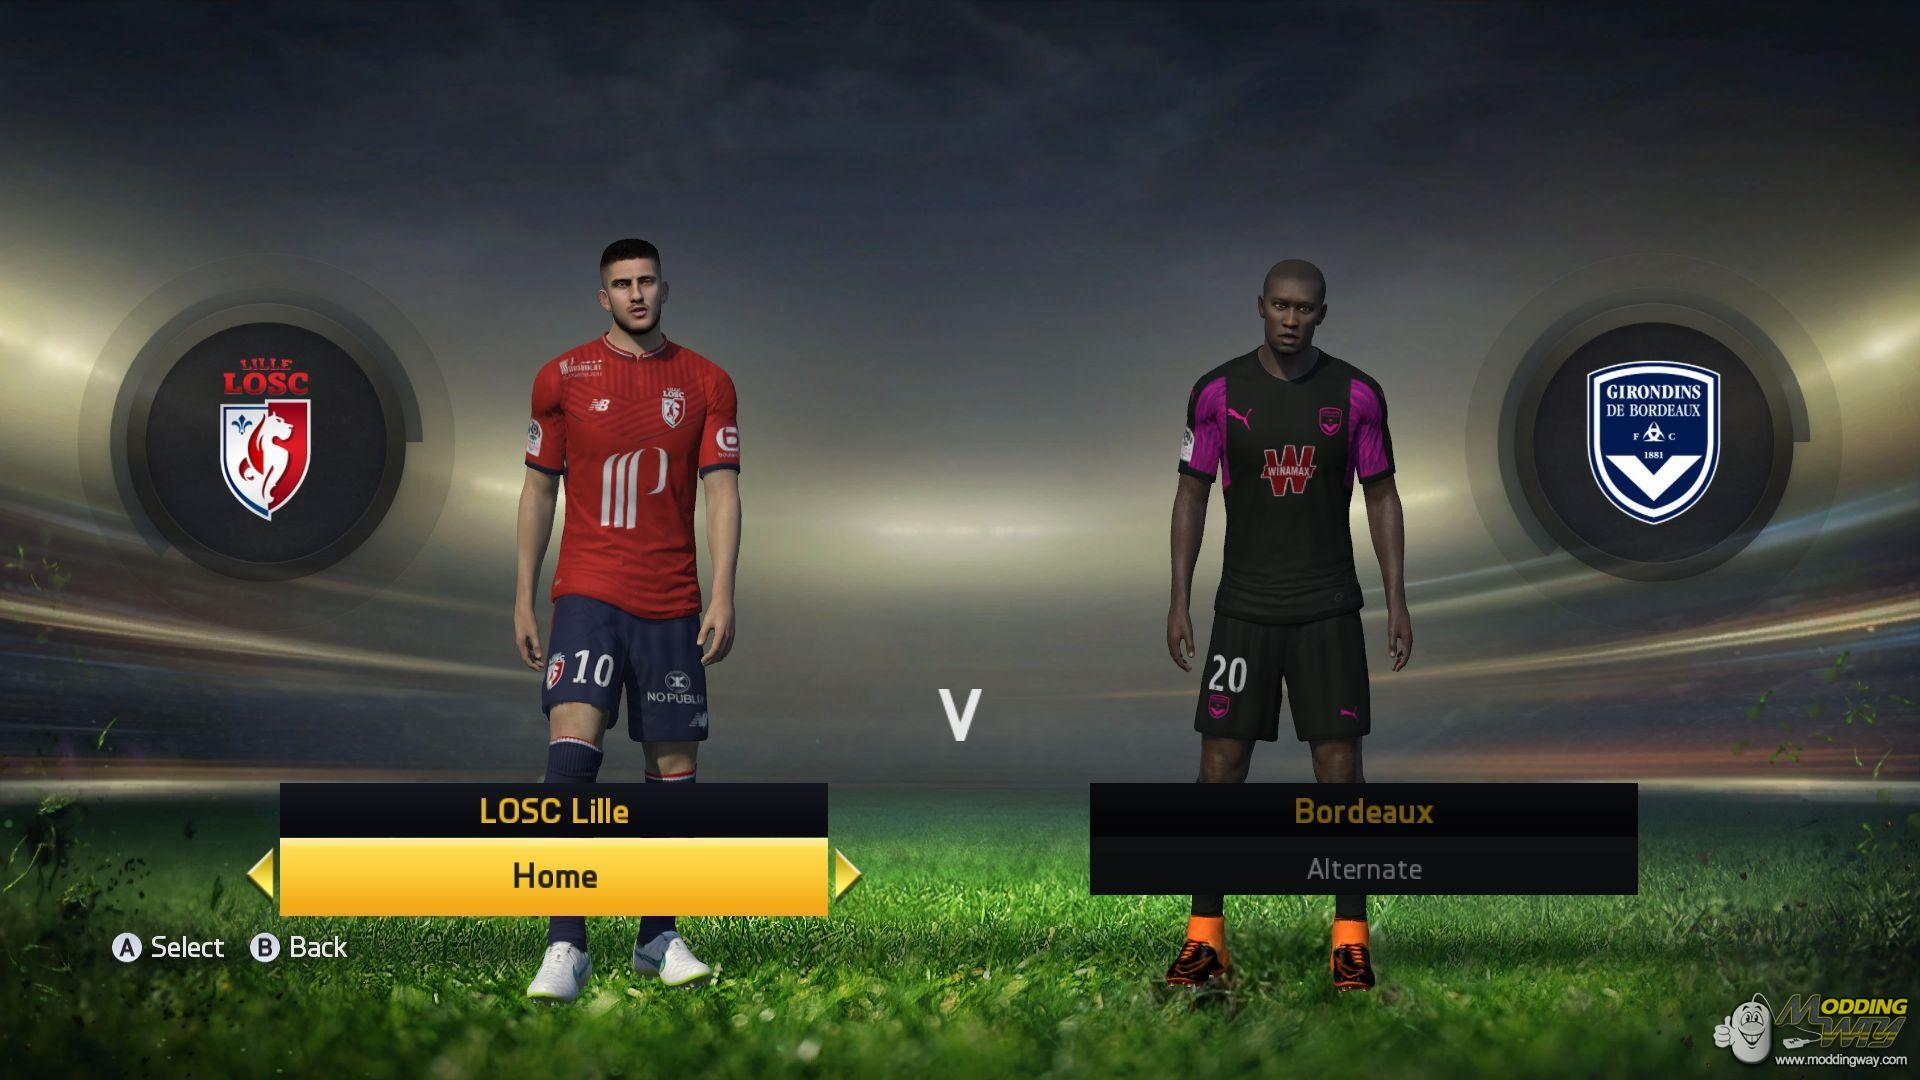 63d781630b2 FIFA 15 ModdingWay Mod 18.0.0 Released - FIFA 15 Video Game at ...